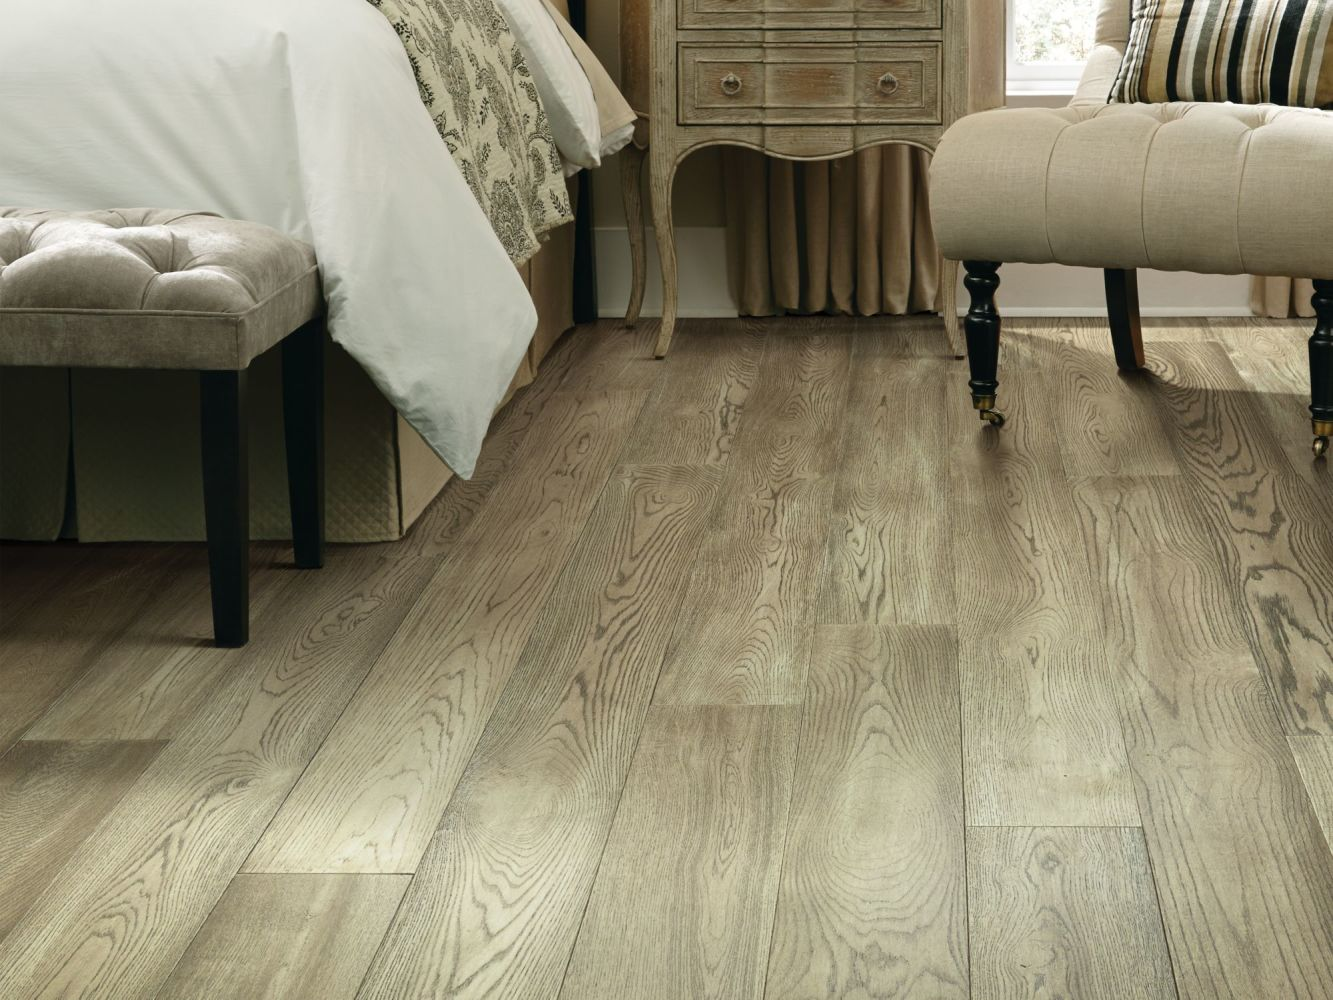 Shaw Floors Floorte Exquisite Bright Oak 01057_CWFW1